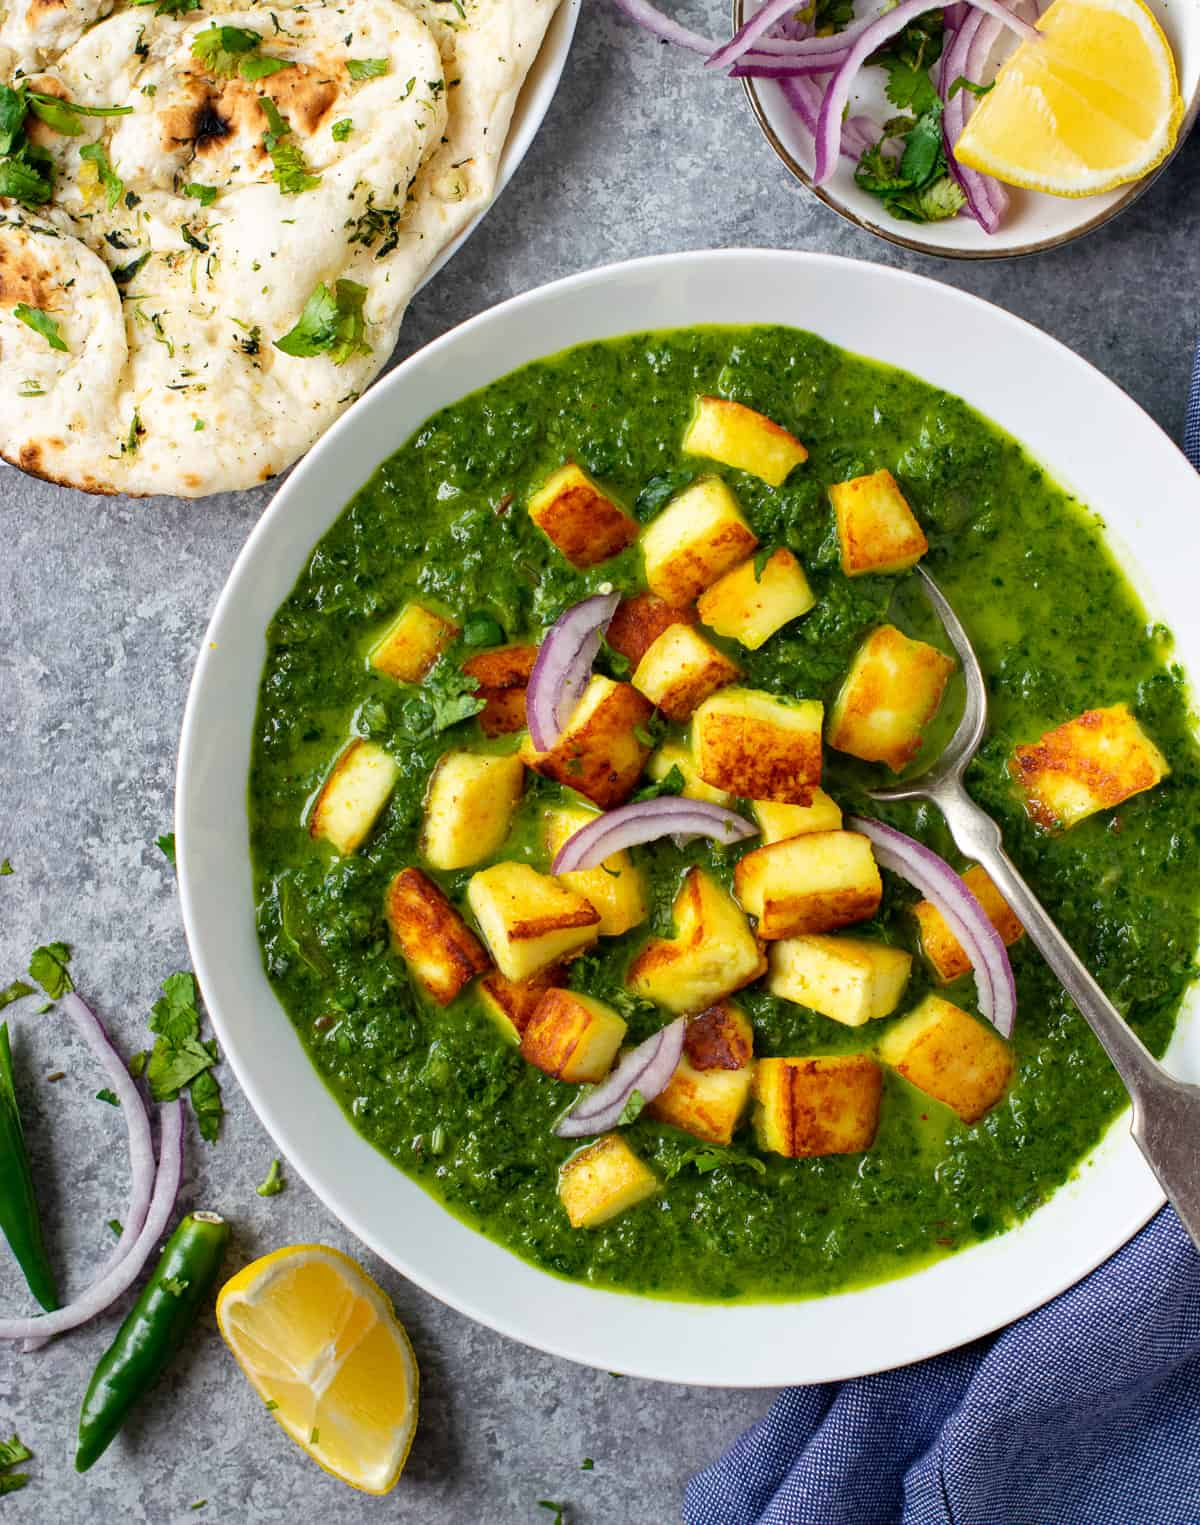 Authentic saag paneer served with naan and some onions on the side